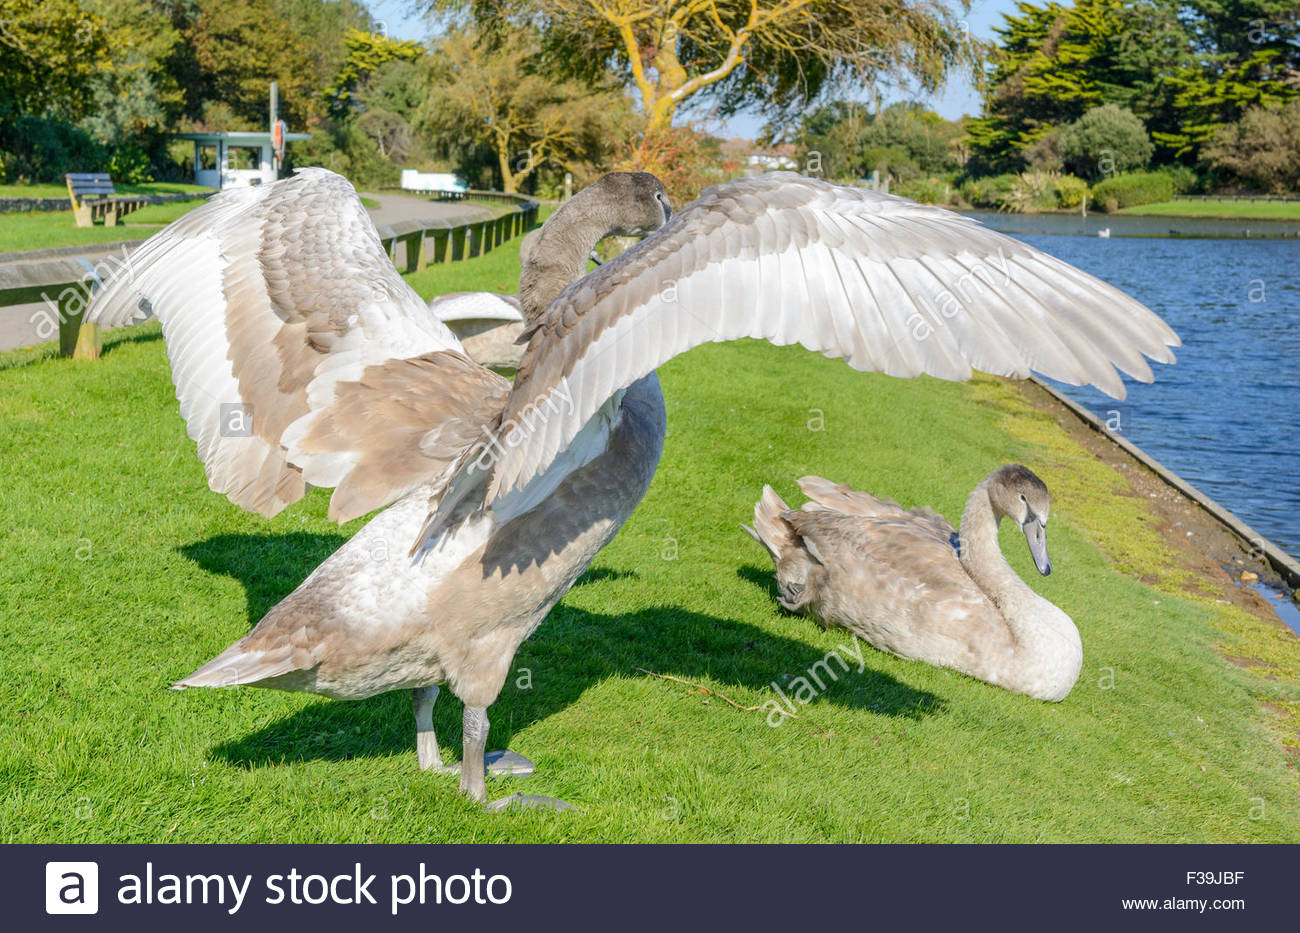 Cygnet stretching its wings by a lake in the UK. - Stock Image